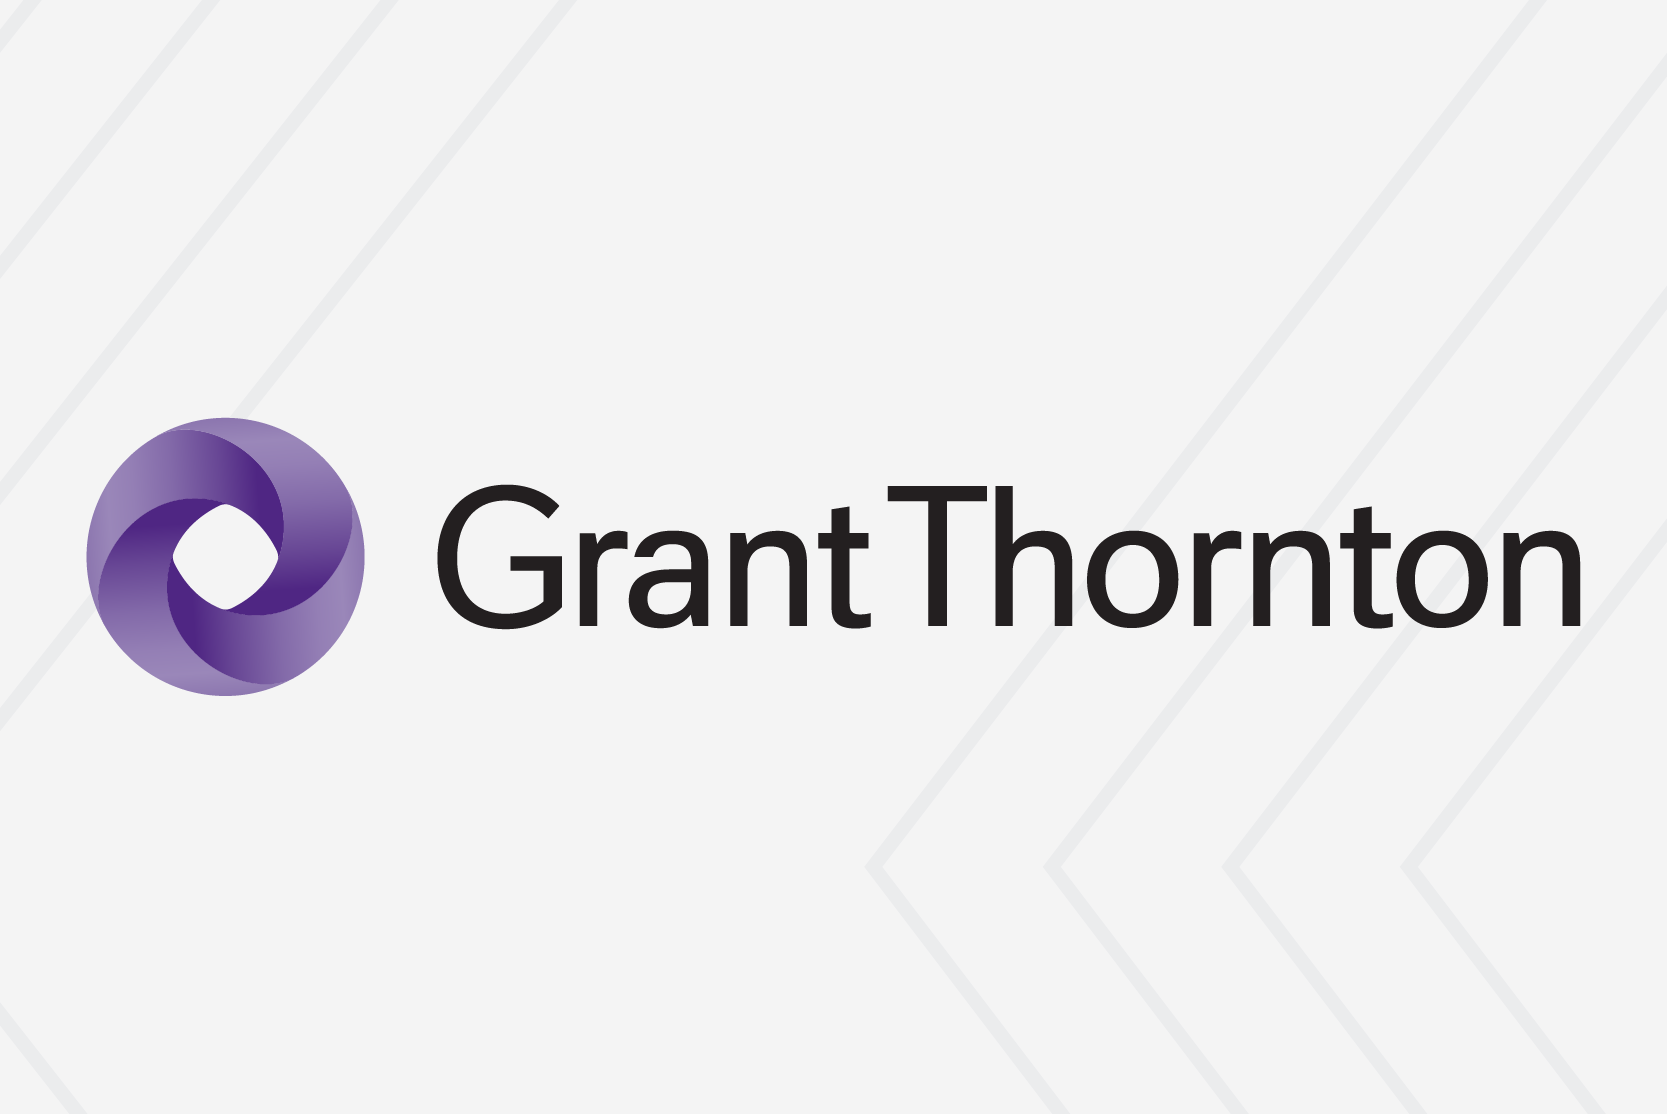 Grant Thornton case study preview image